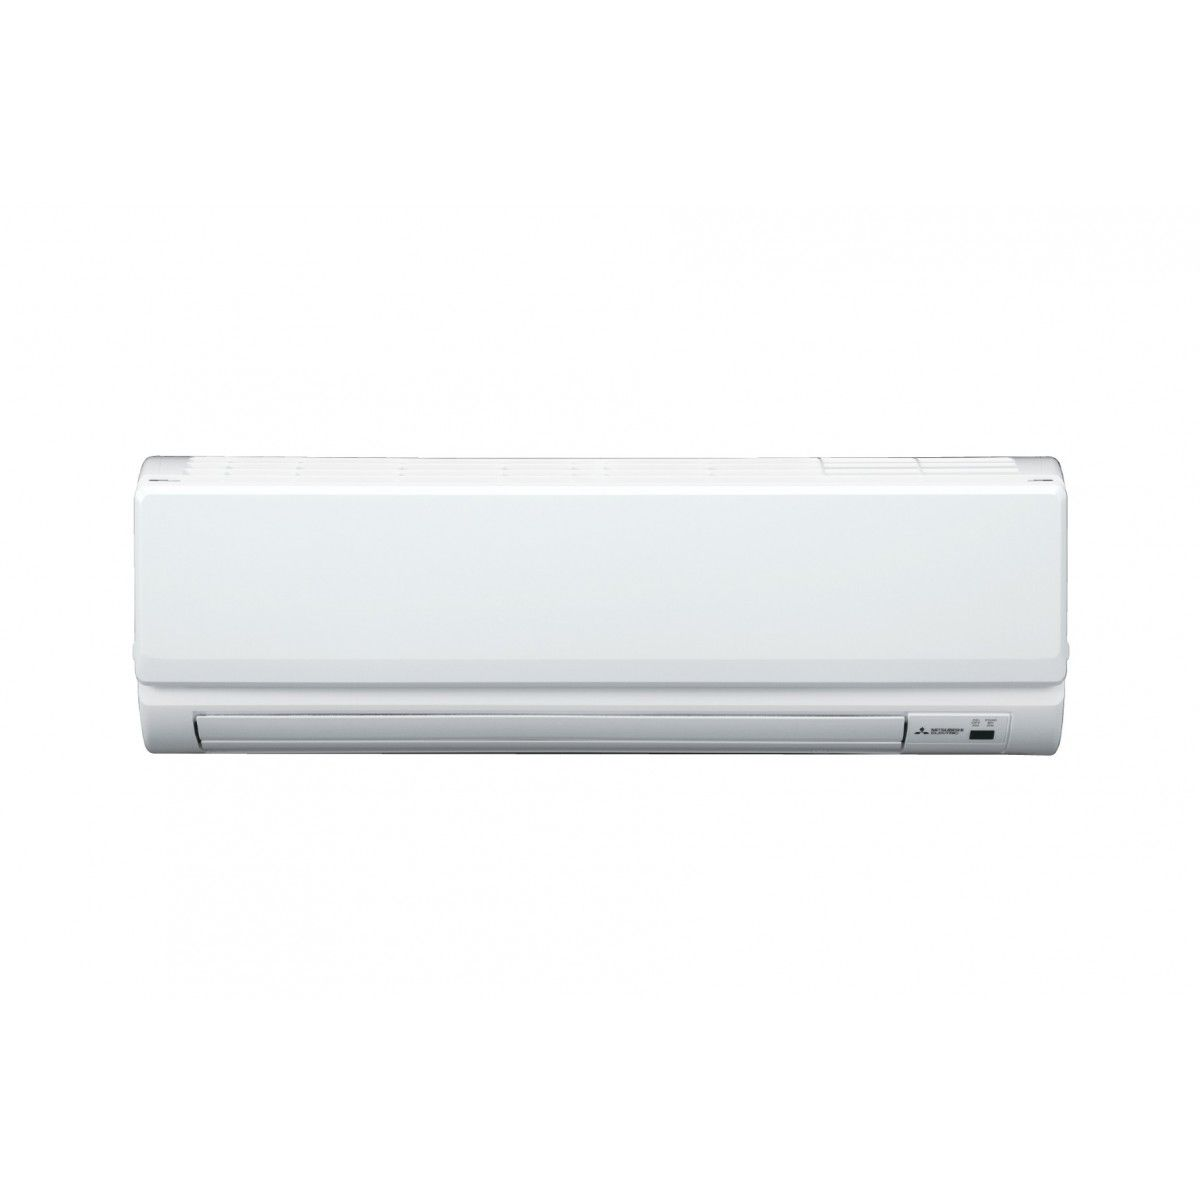 18k btu mitsubishi pkaa wall mounted indoor unit in for Ductless ac